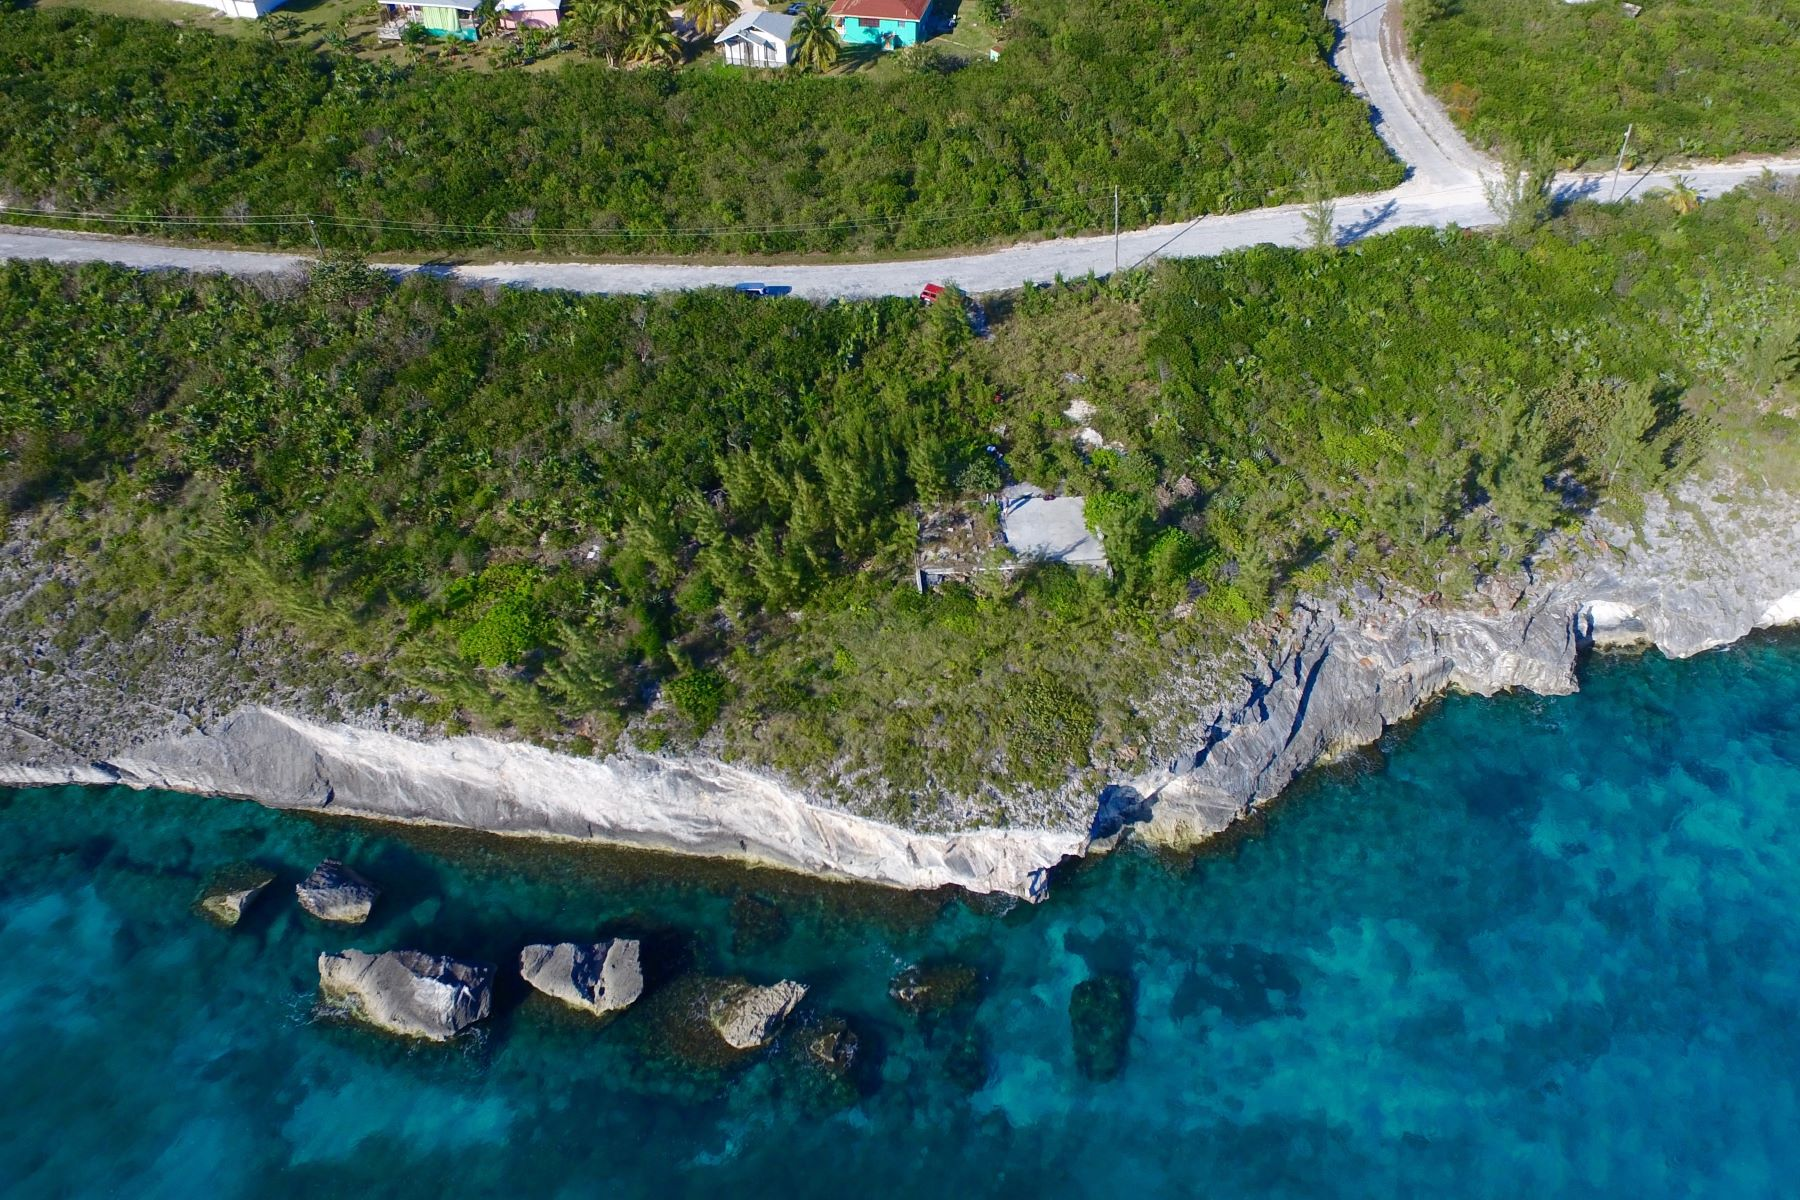 Đất đai vì Bán tại Waterfront Lot with Spectacular Views Rainbow Bay, Eleuthera, Bahamas